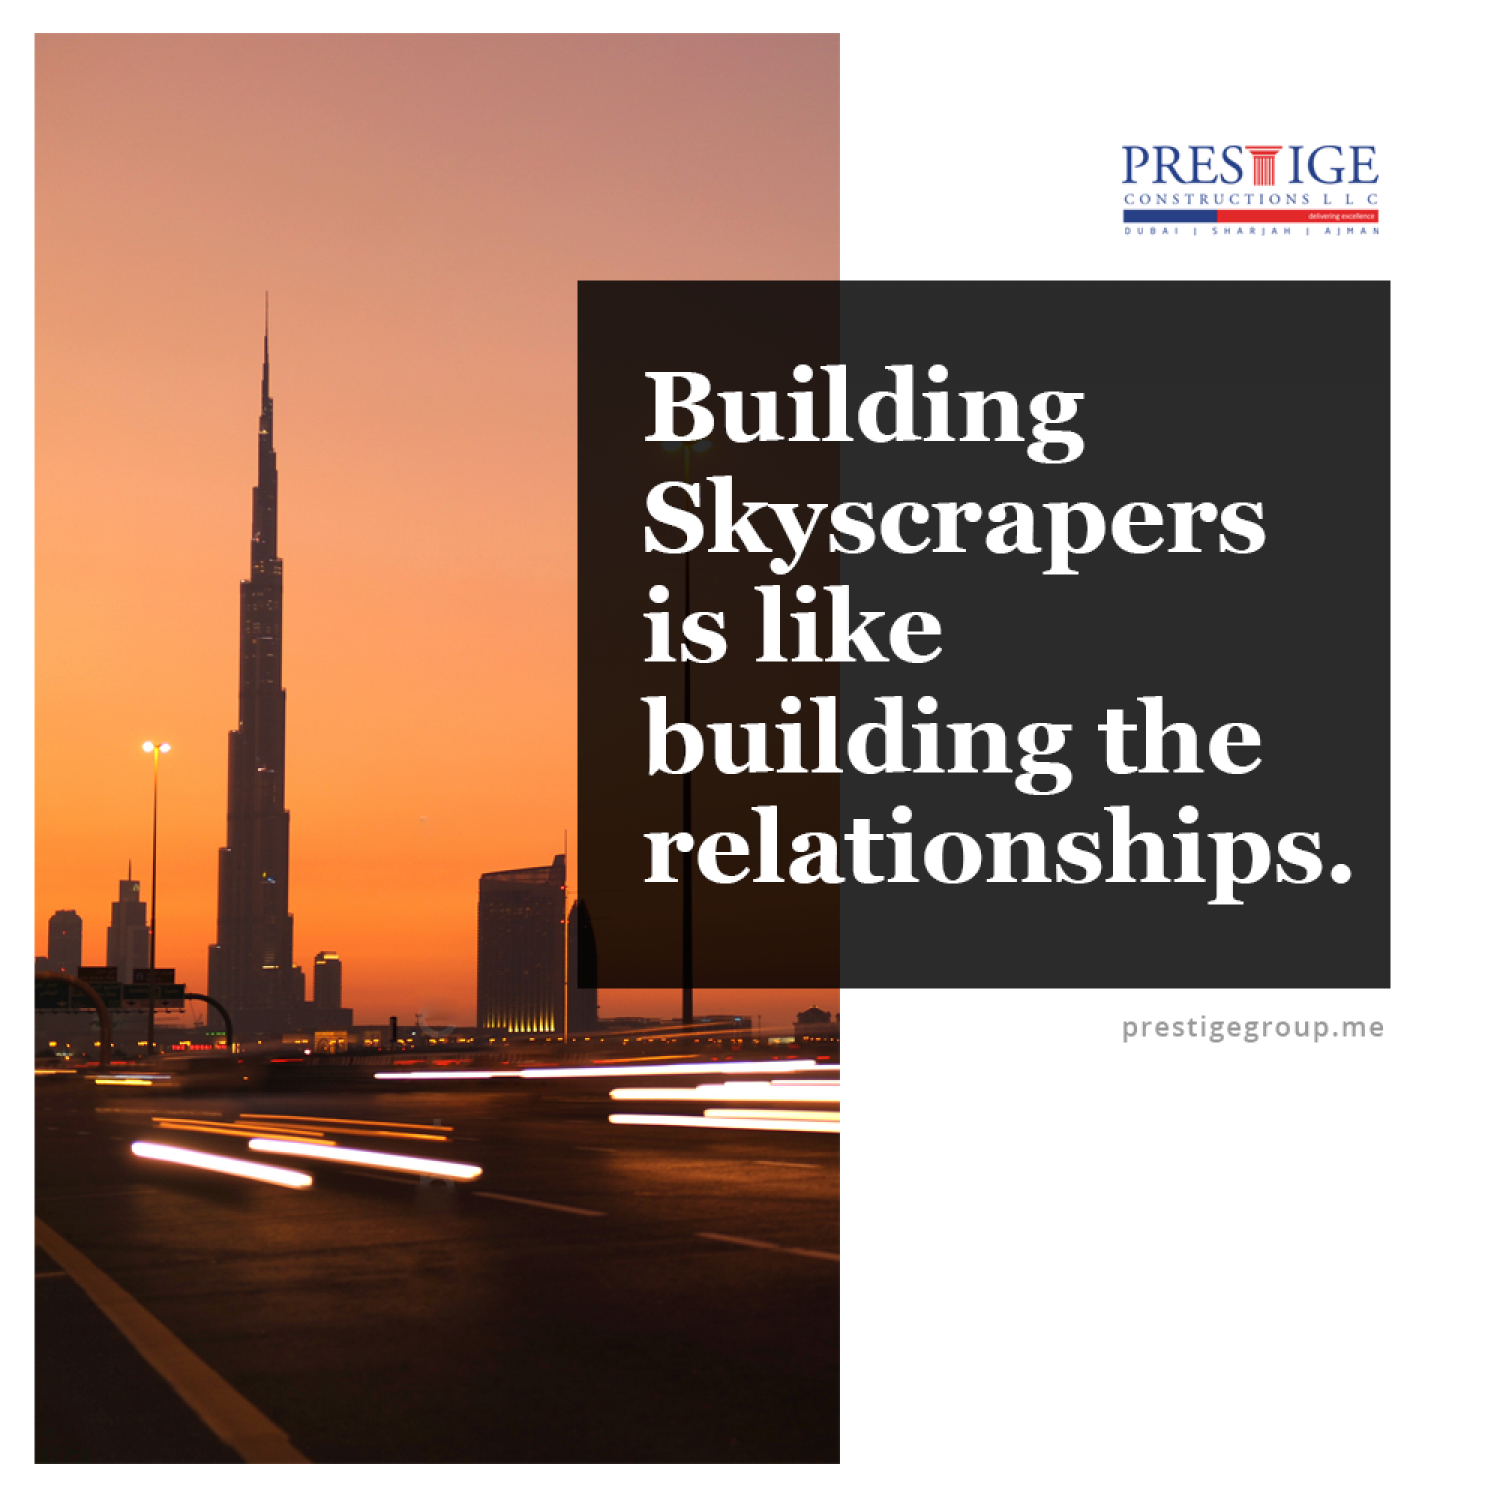 """Building skyscrapers is like building the relationships"" – Prestige Constructions LLC, UAE Infographic"